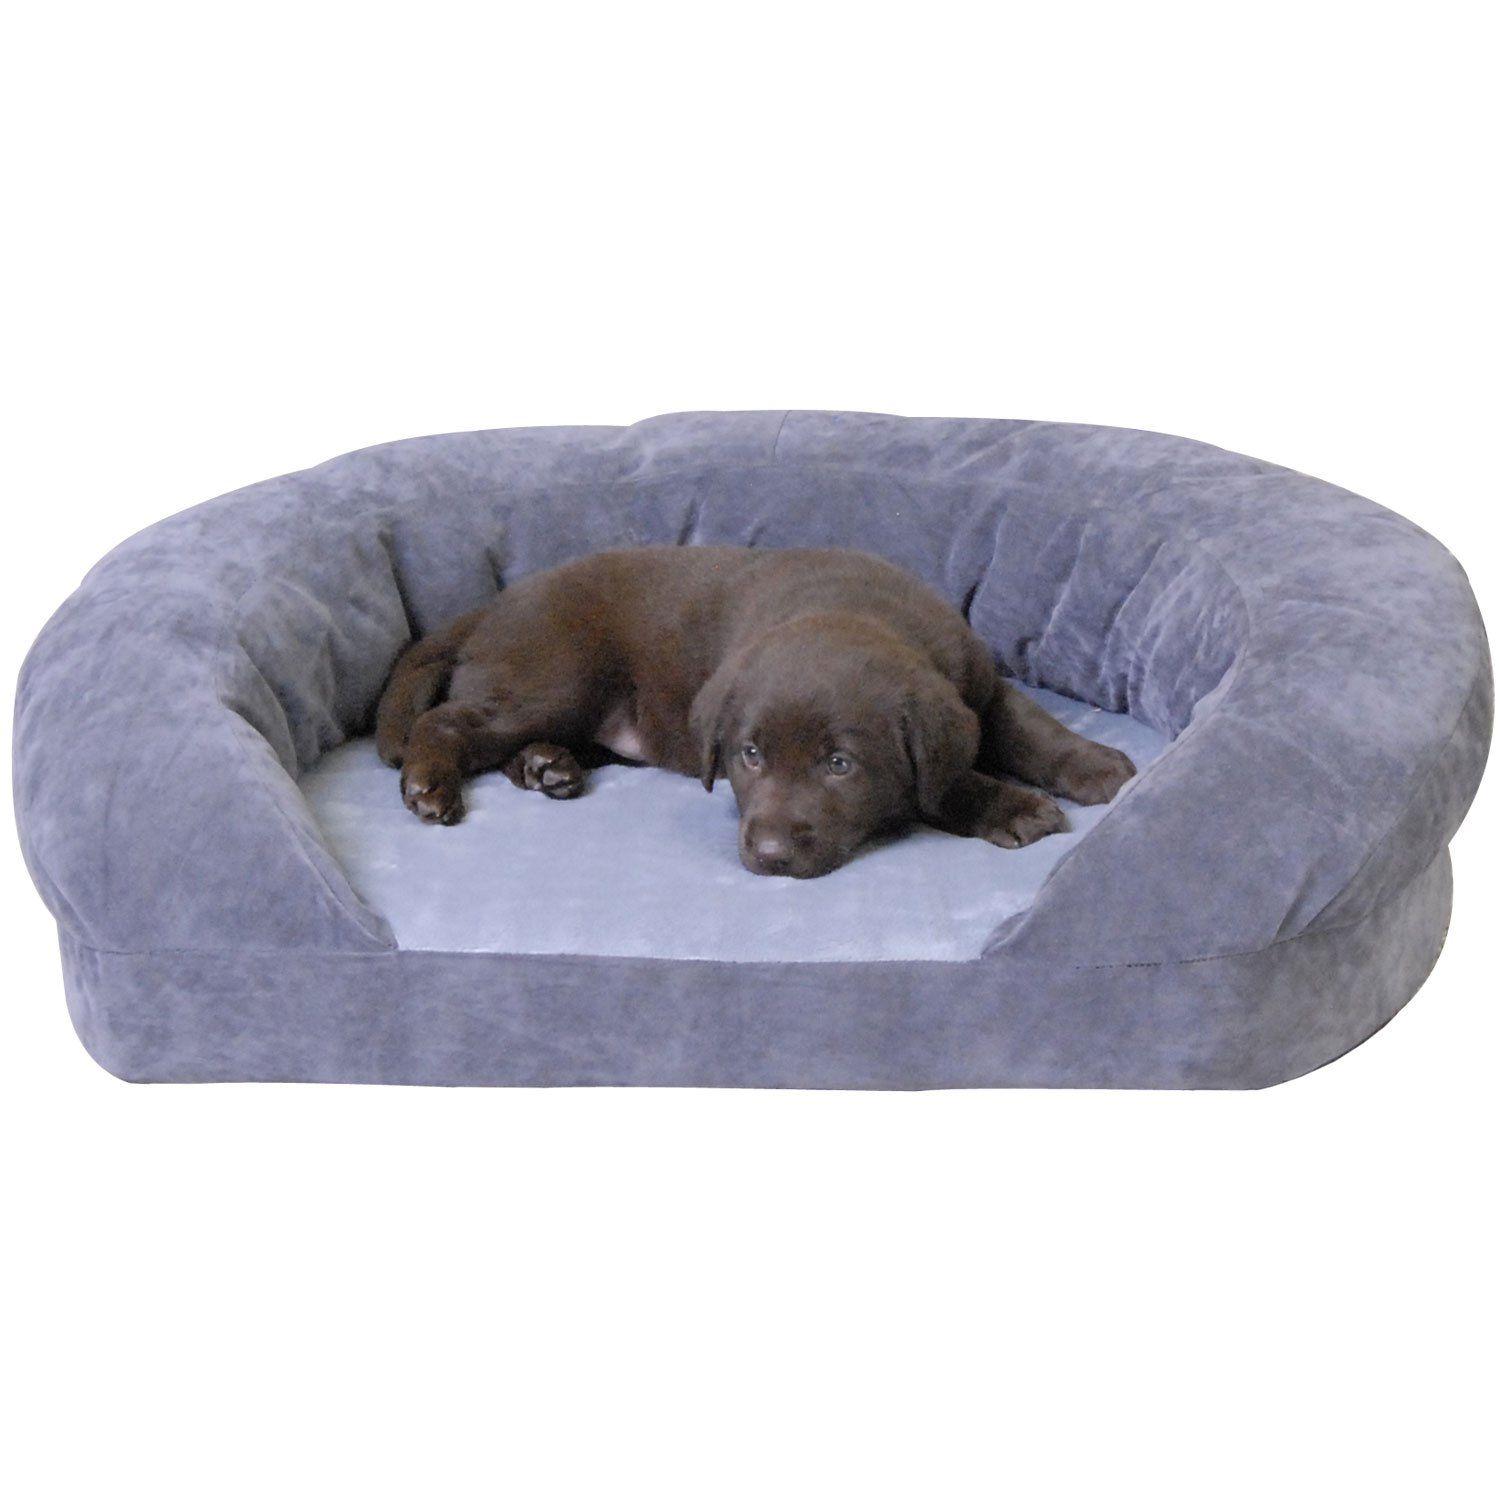 K Amp H Orthopedic Bolster Sleeper Dog Bed In Gray Petco